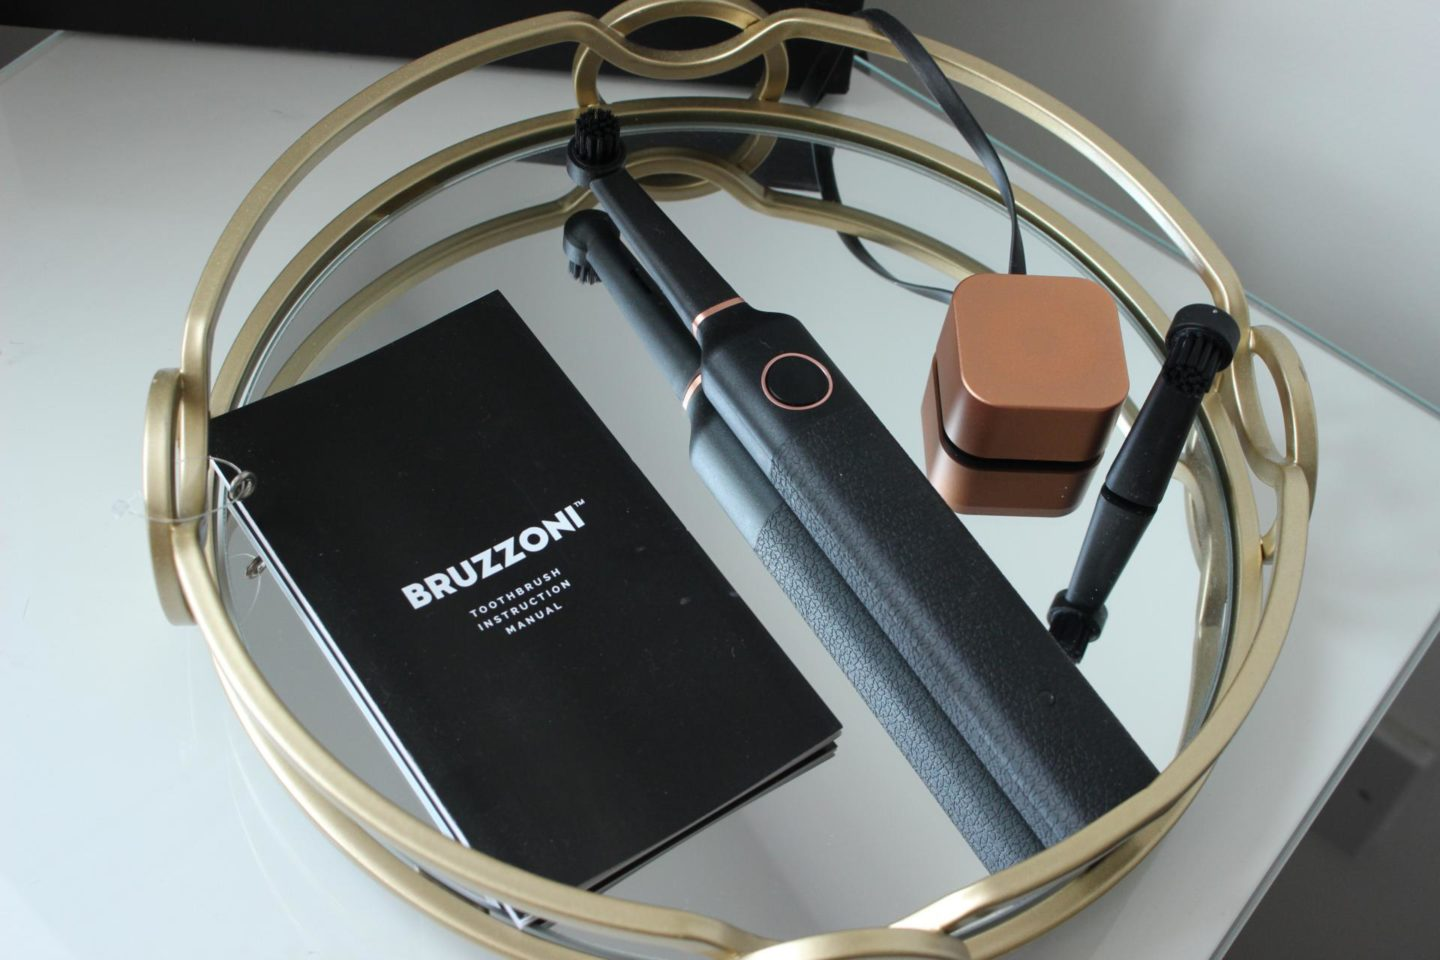 Bruzzoni Electric Toothbrush Review